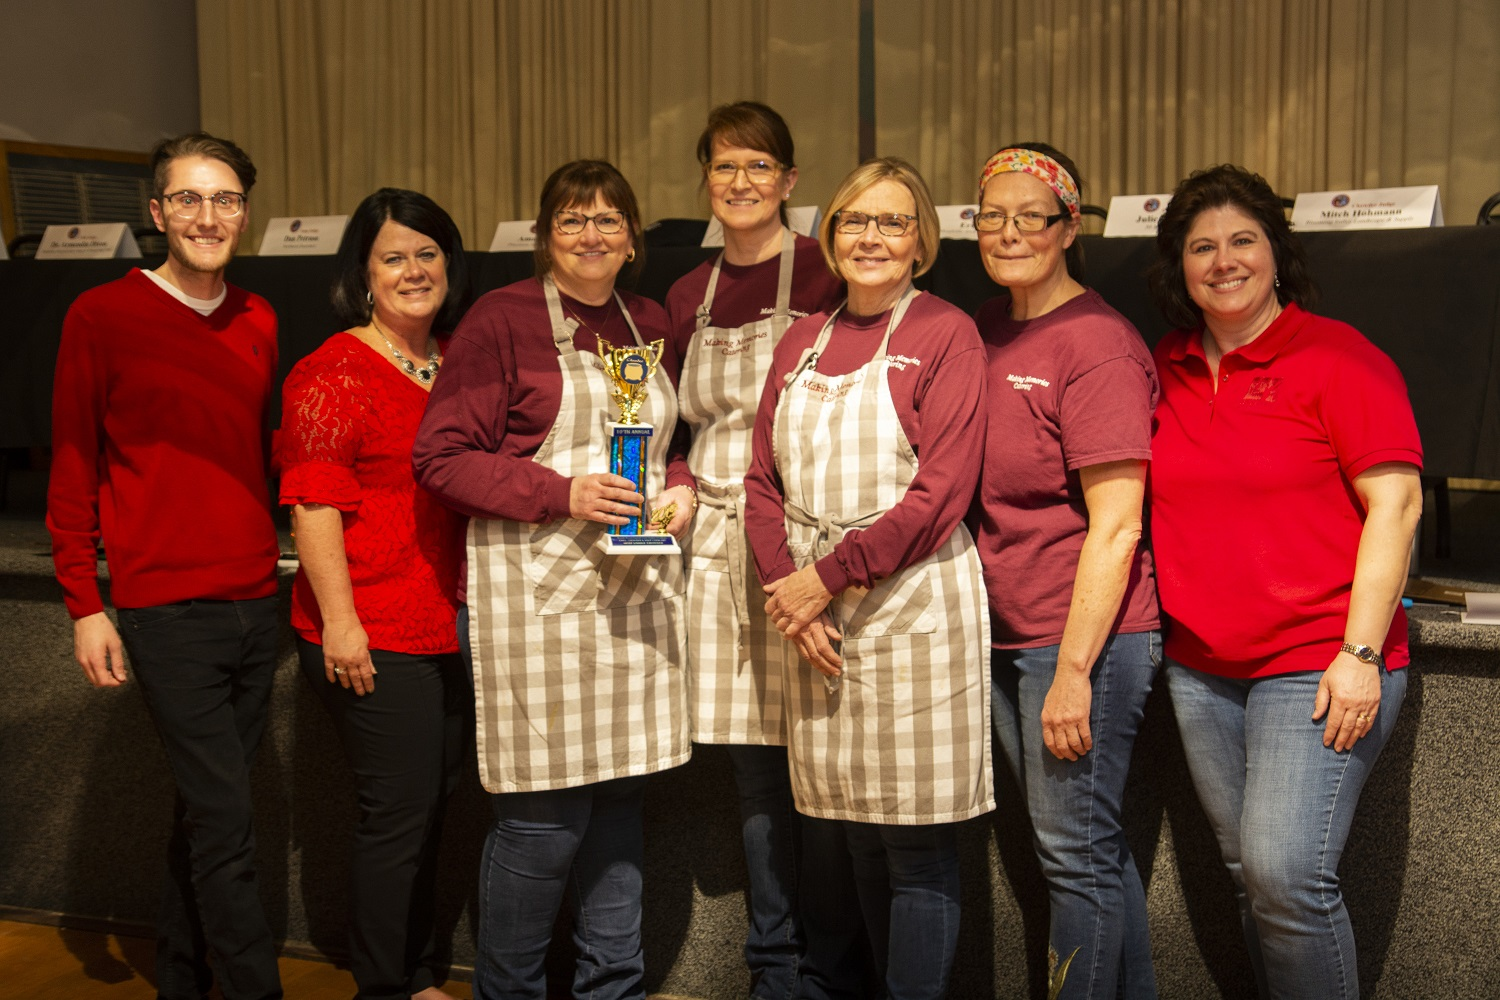 chamberofcommerce_cookoff_2019_42_46762938134_o.jpg